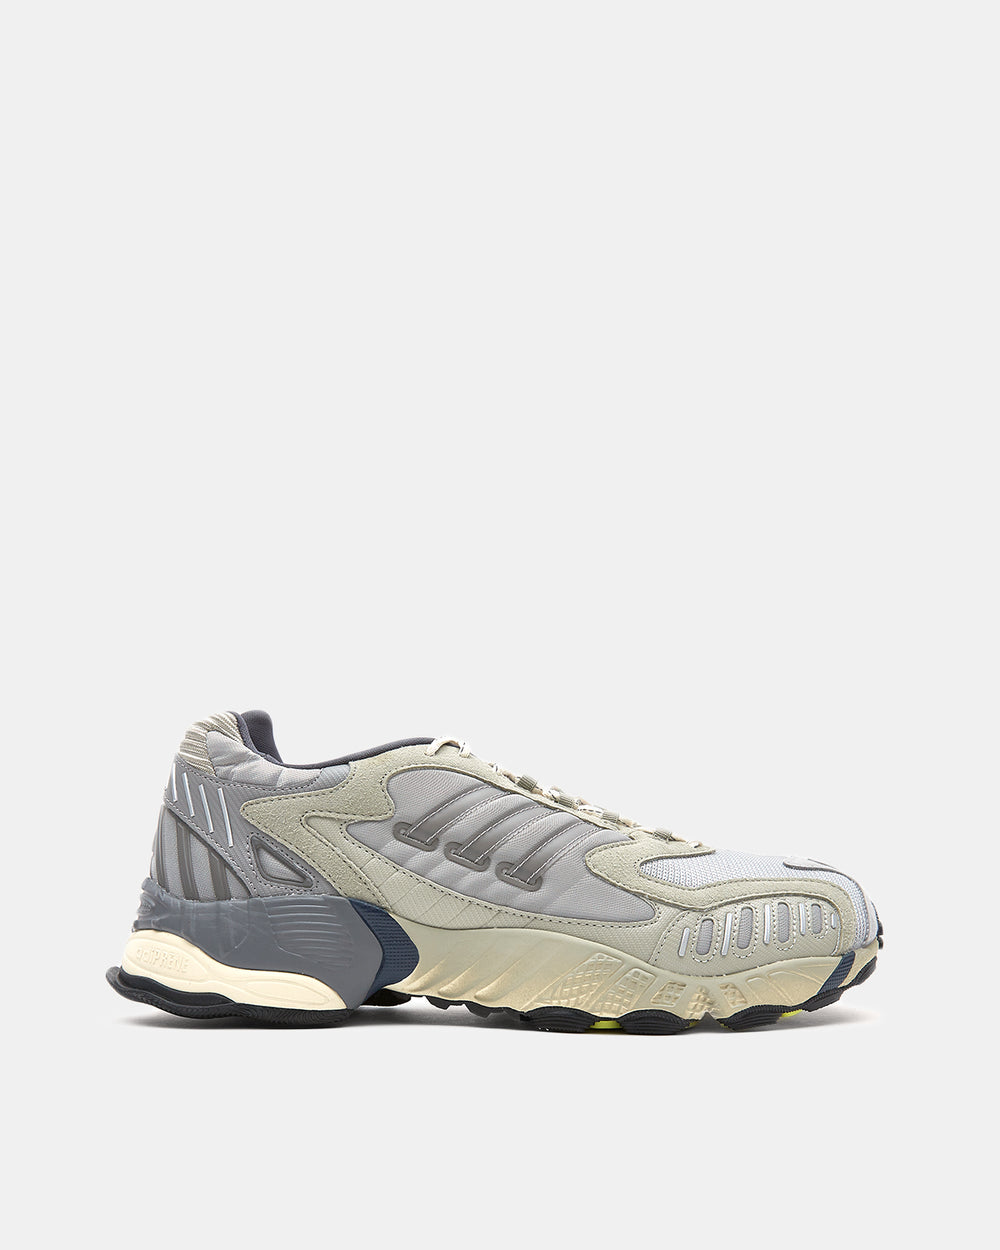 adidas Consortium - adidas Consortium x Norse Projects Torsion TRDC (Grey | Yellow)